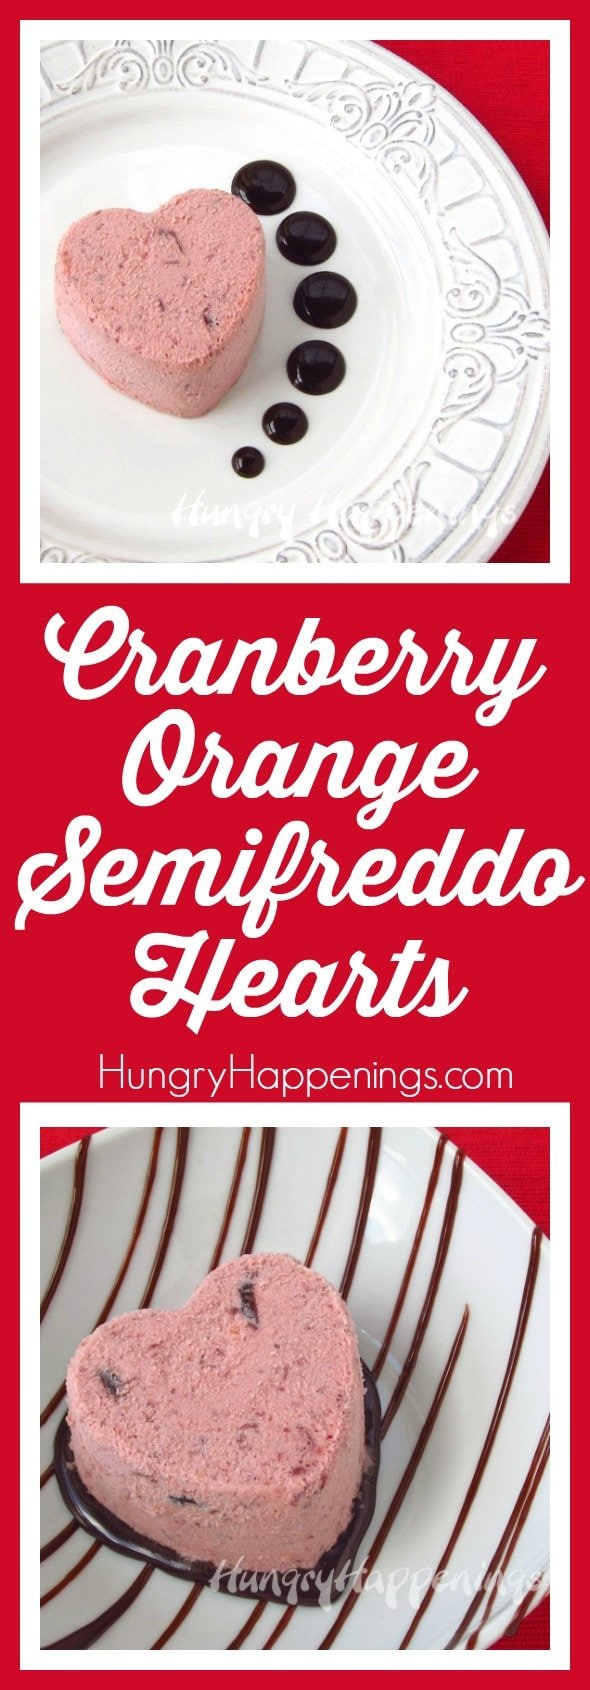 Cool off all the hot love this Valentine's Day with these Cranberry Orange Semifreddo Hearts. Enjoy some delicious Italian ice cream with some elegant flavors to accompany it.